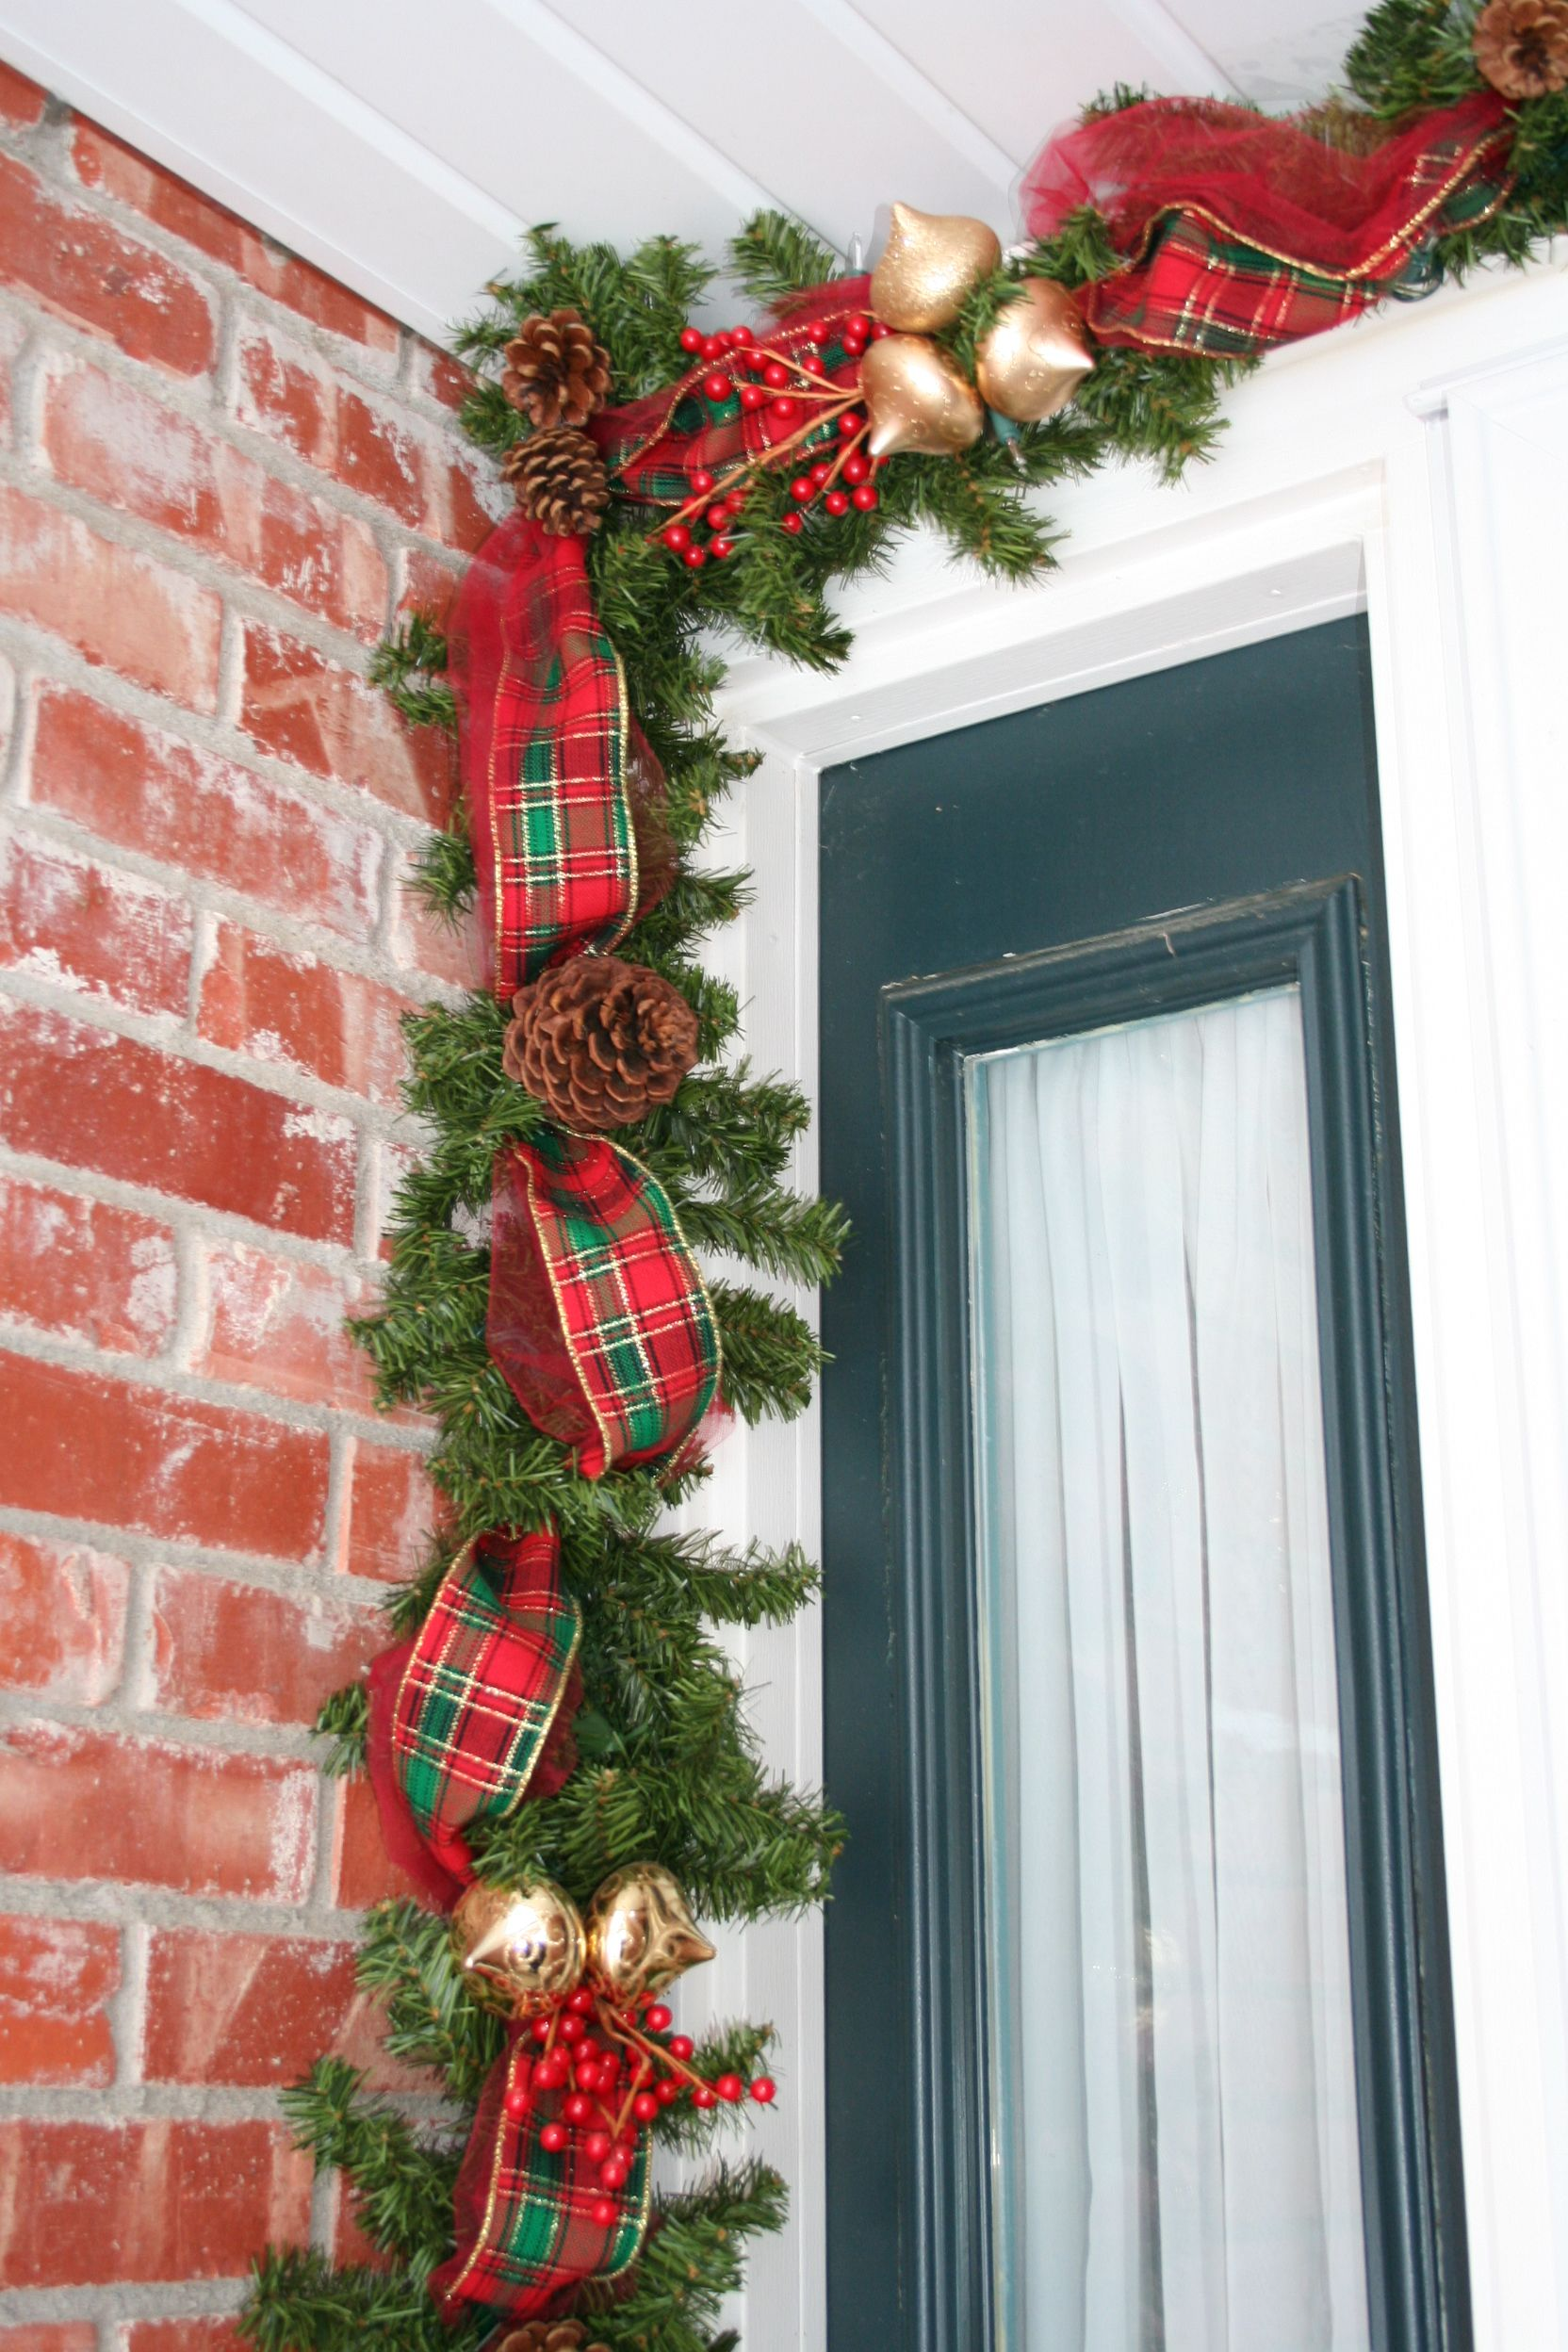 Front door deco mesh christmas decorations - A Version Of The Deco Mesh Garland Lighted Garland With Tulle Ribbon Pine Cones Ornaments Around The Front Door At Christmas